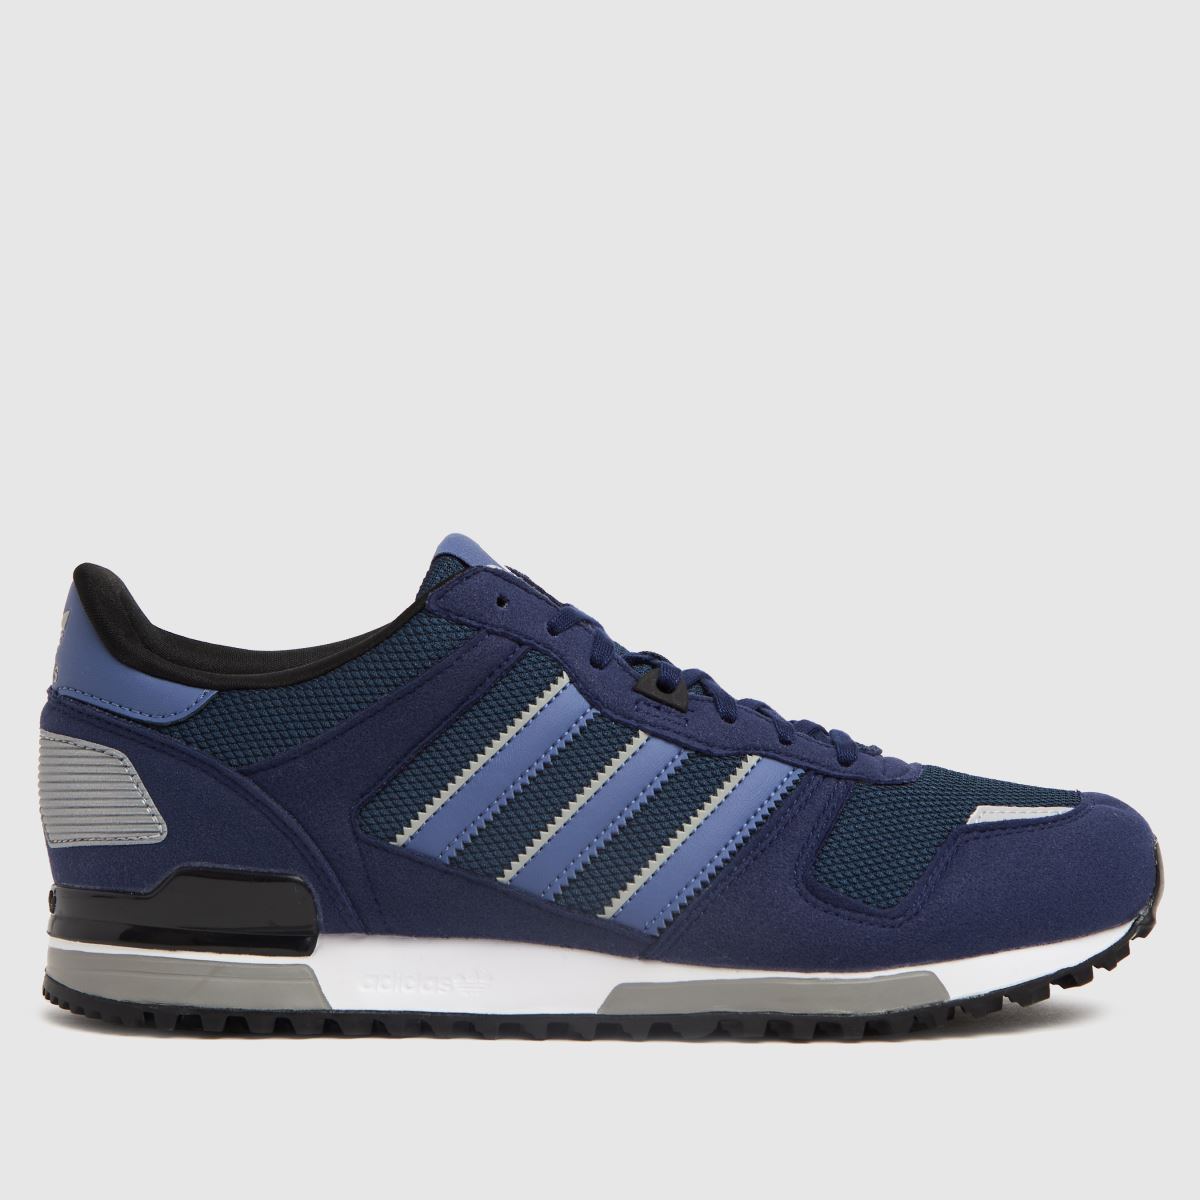 Adidas Navy Zx 700 Trainers